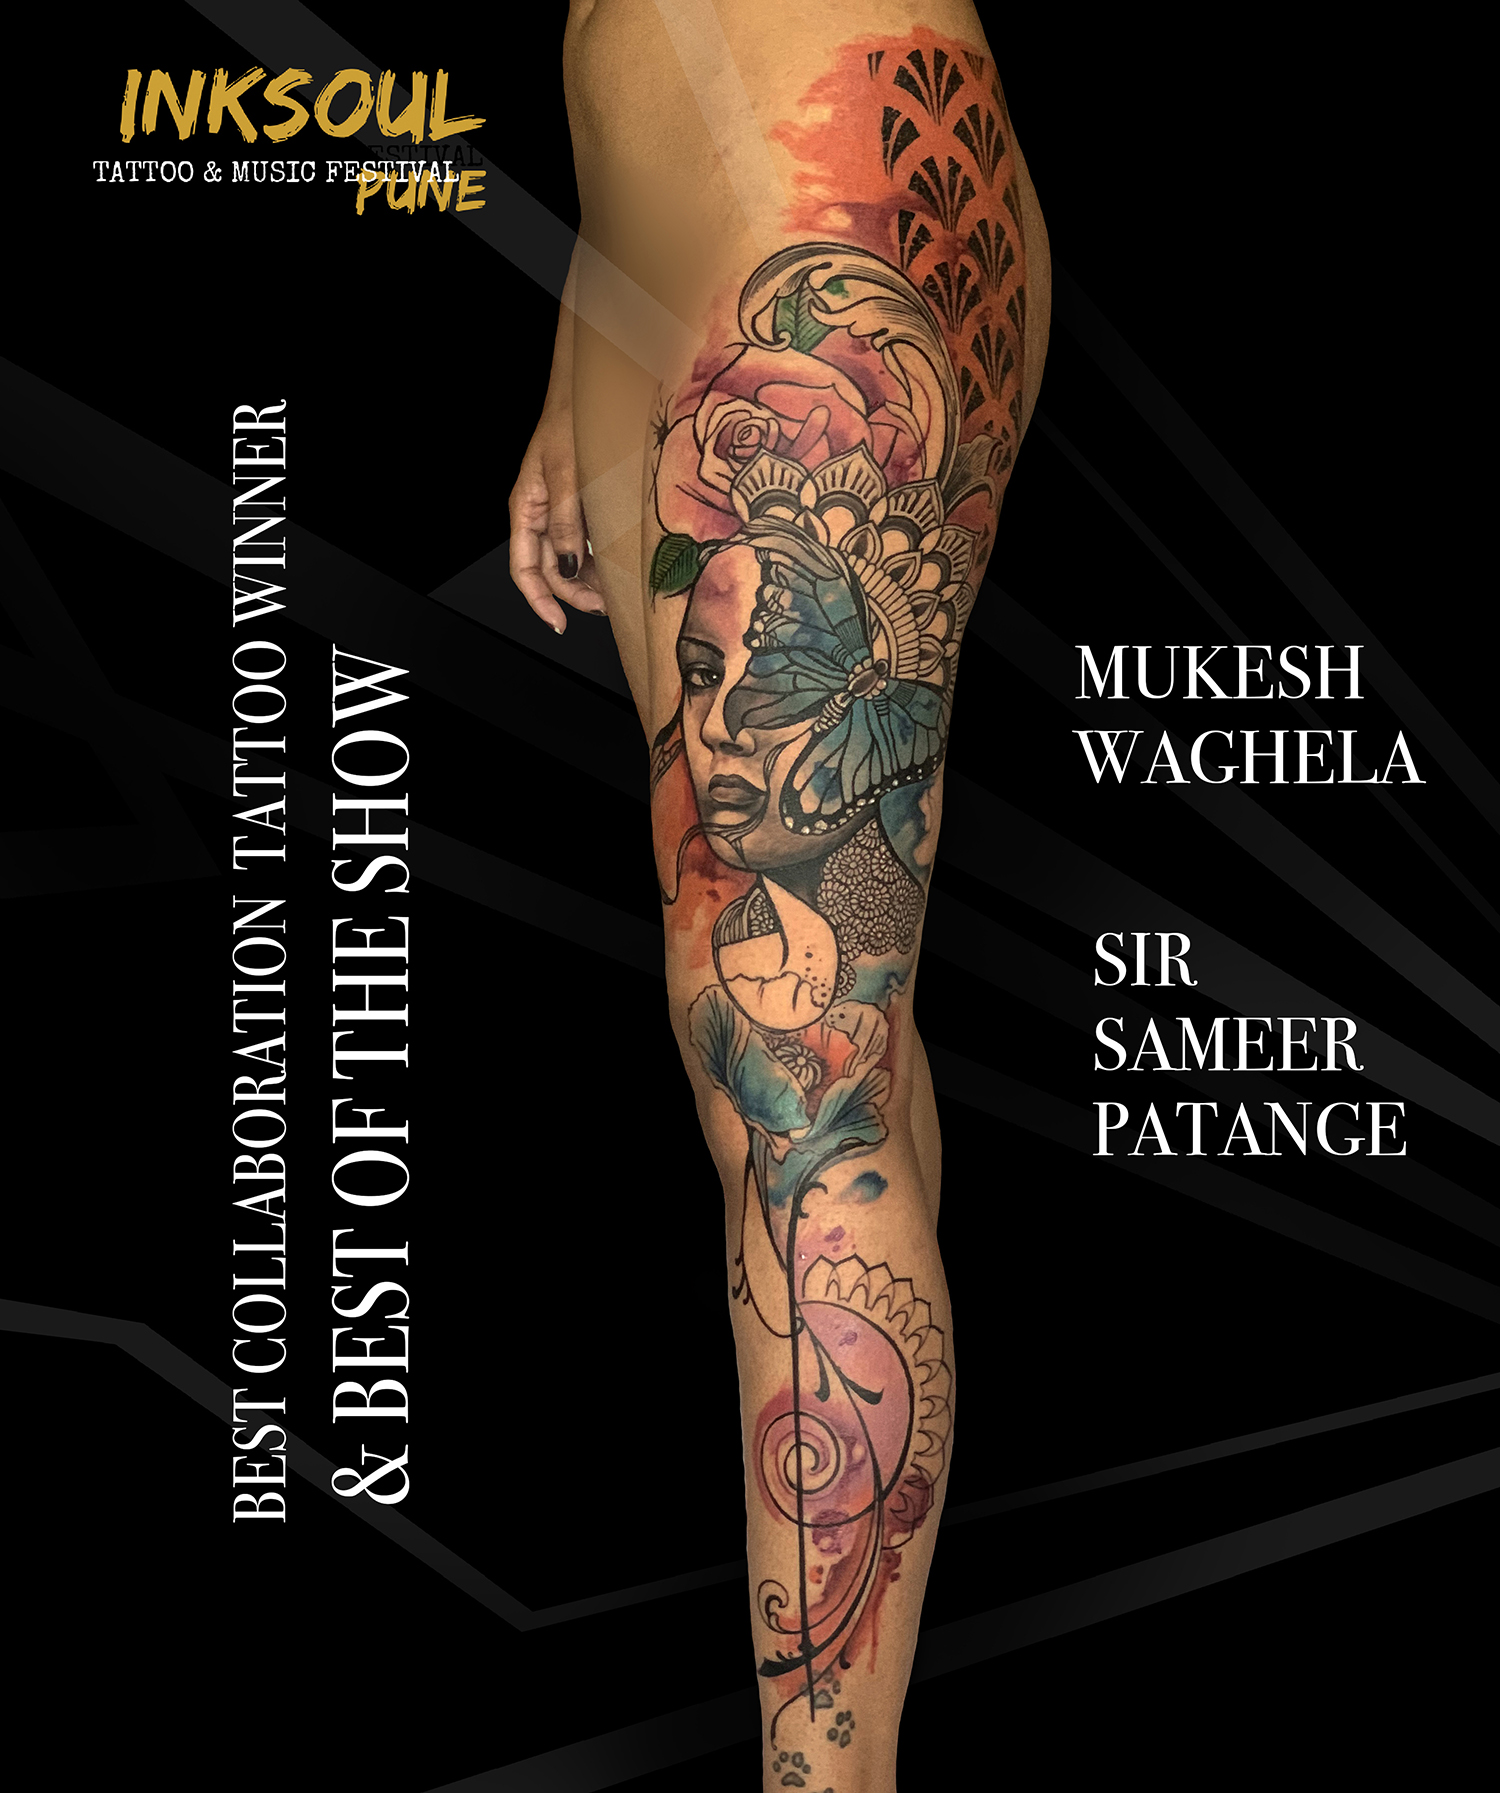 Collaboration Tattoo done by mukesh waghela & sameer patange at inksoul tattoo festival pune India